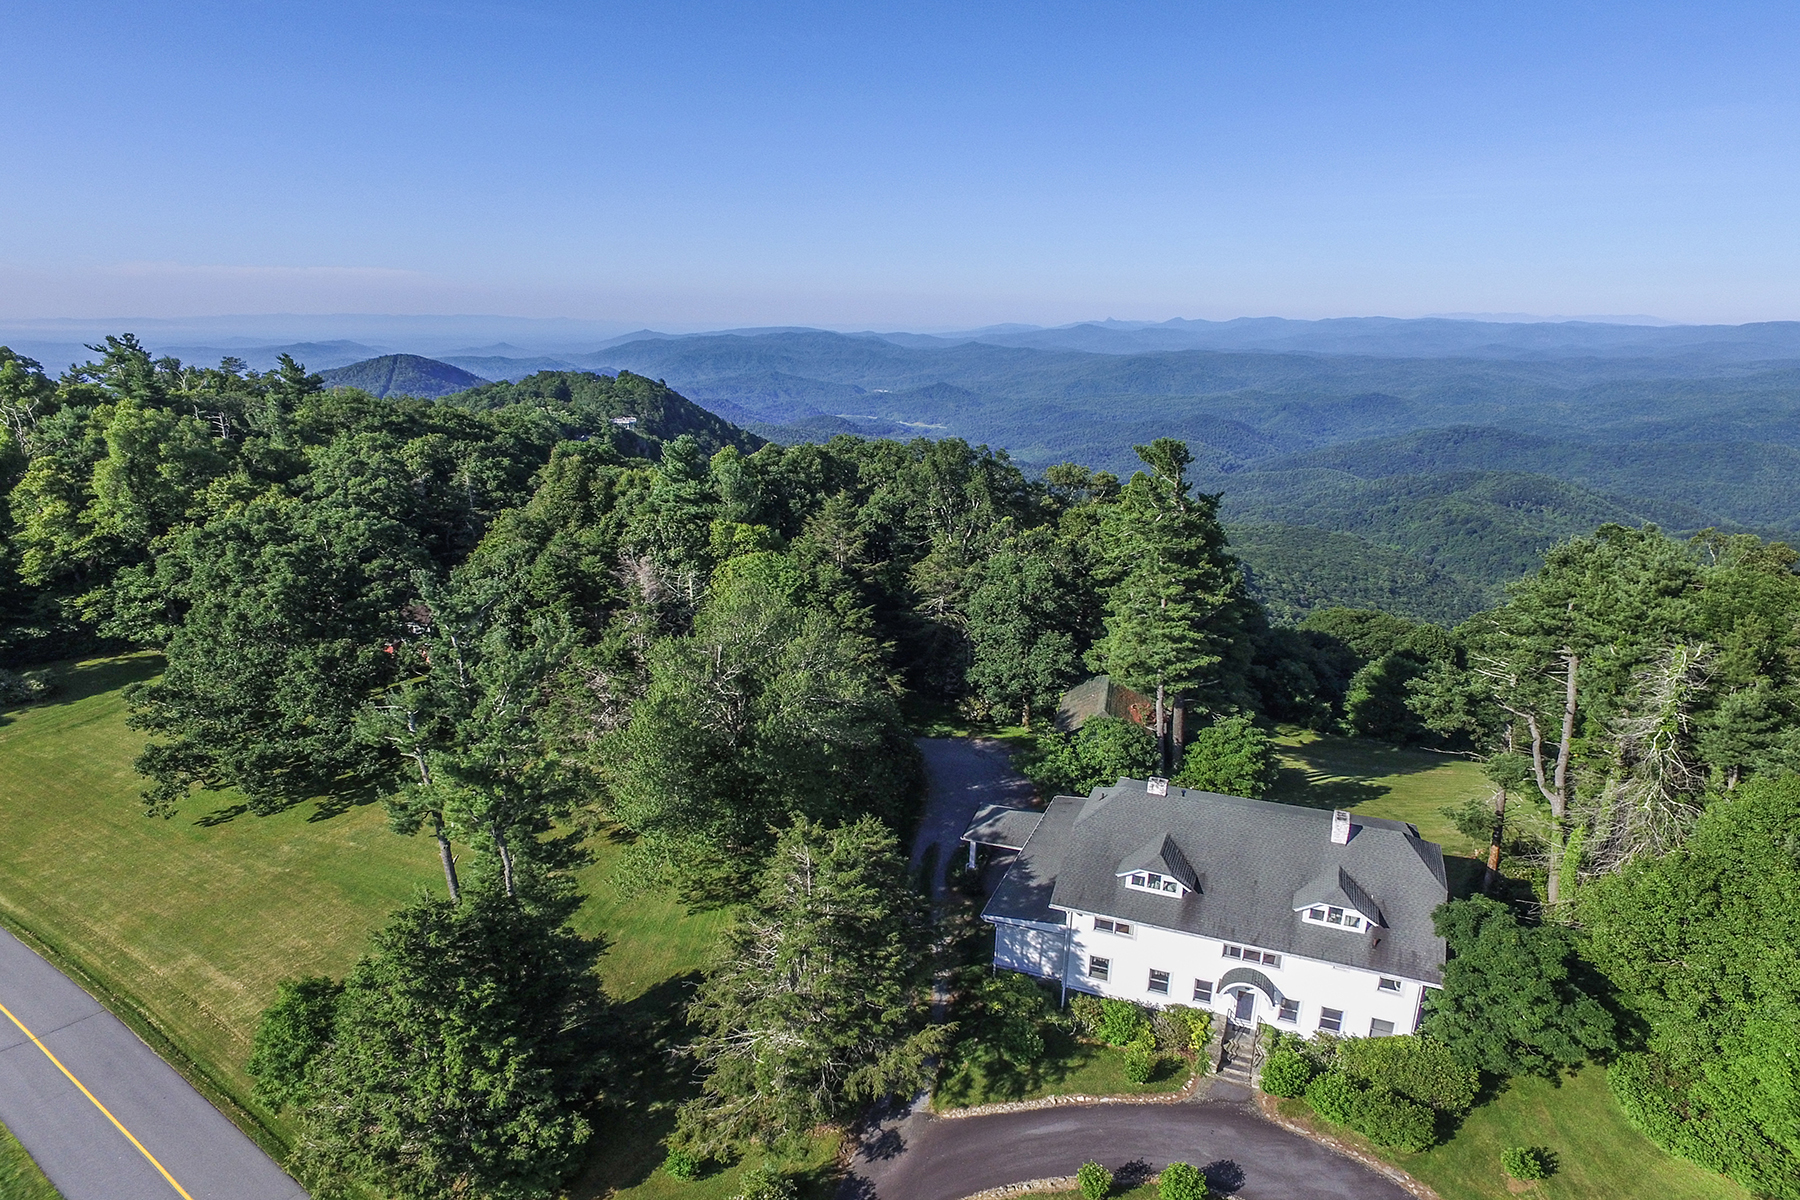 Single Family Home for Active at CENTURY OWNED PRIVATE FAMILY ESTATE 460/514 Pinnacle Avenue Blowing Rock, North Carolina 28605 United States